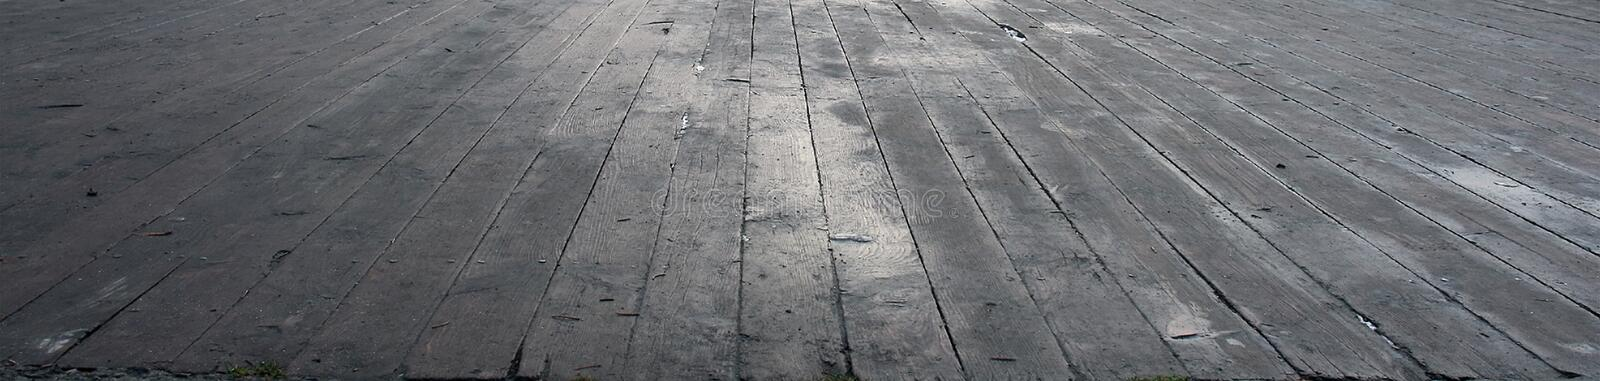 Download Wood texture stock image. Image of pattern, grungy, surface - 31142517